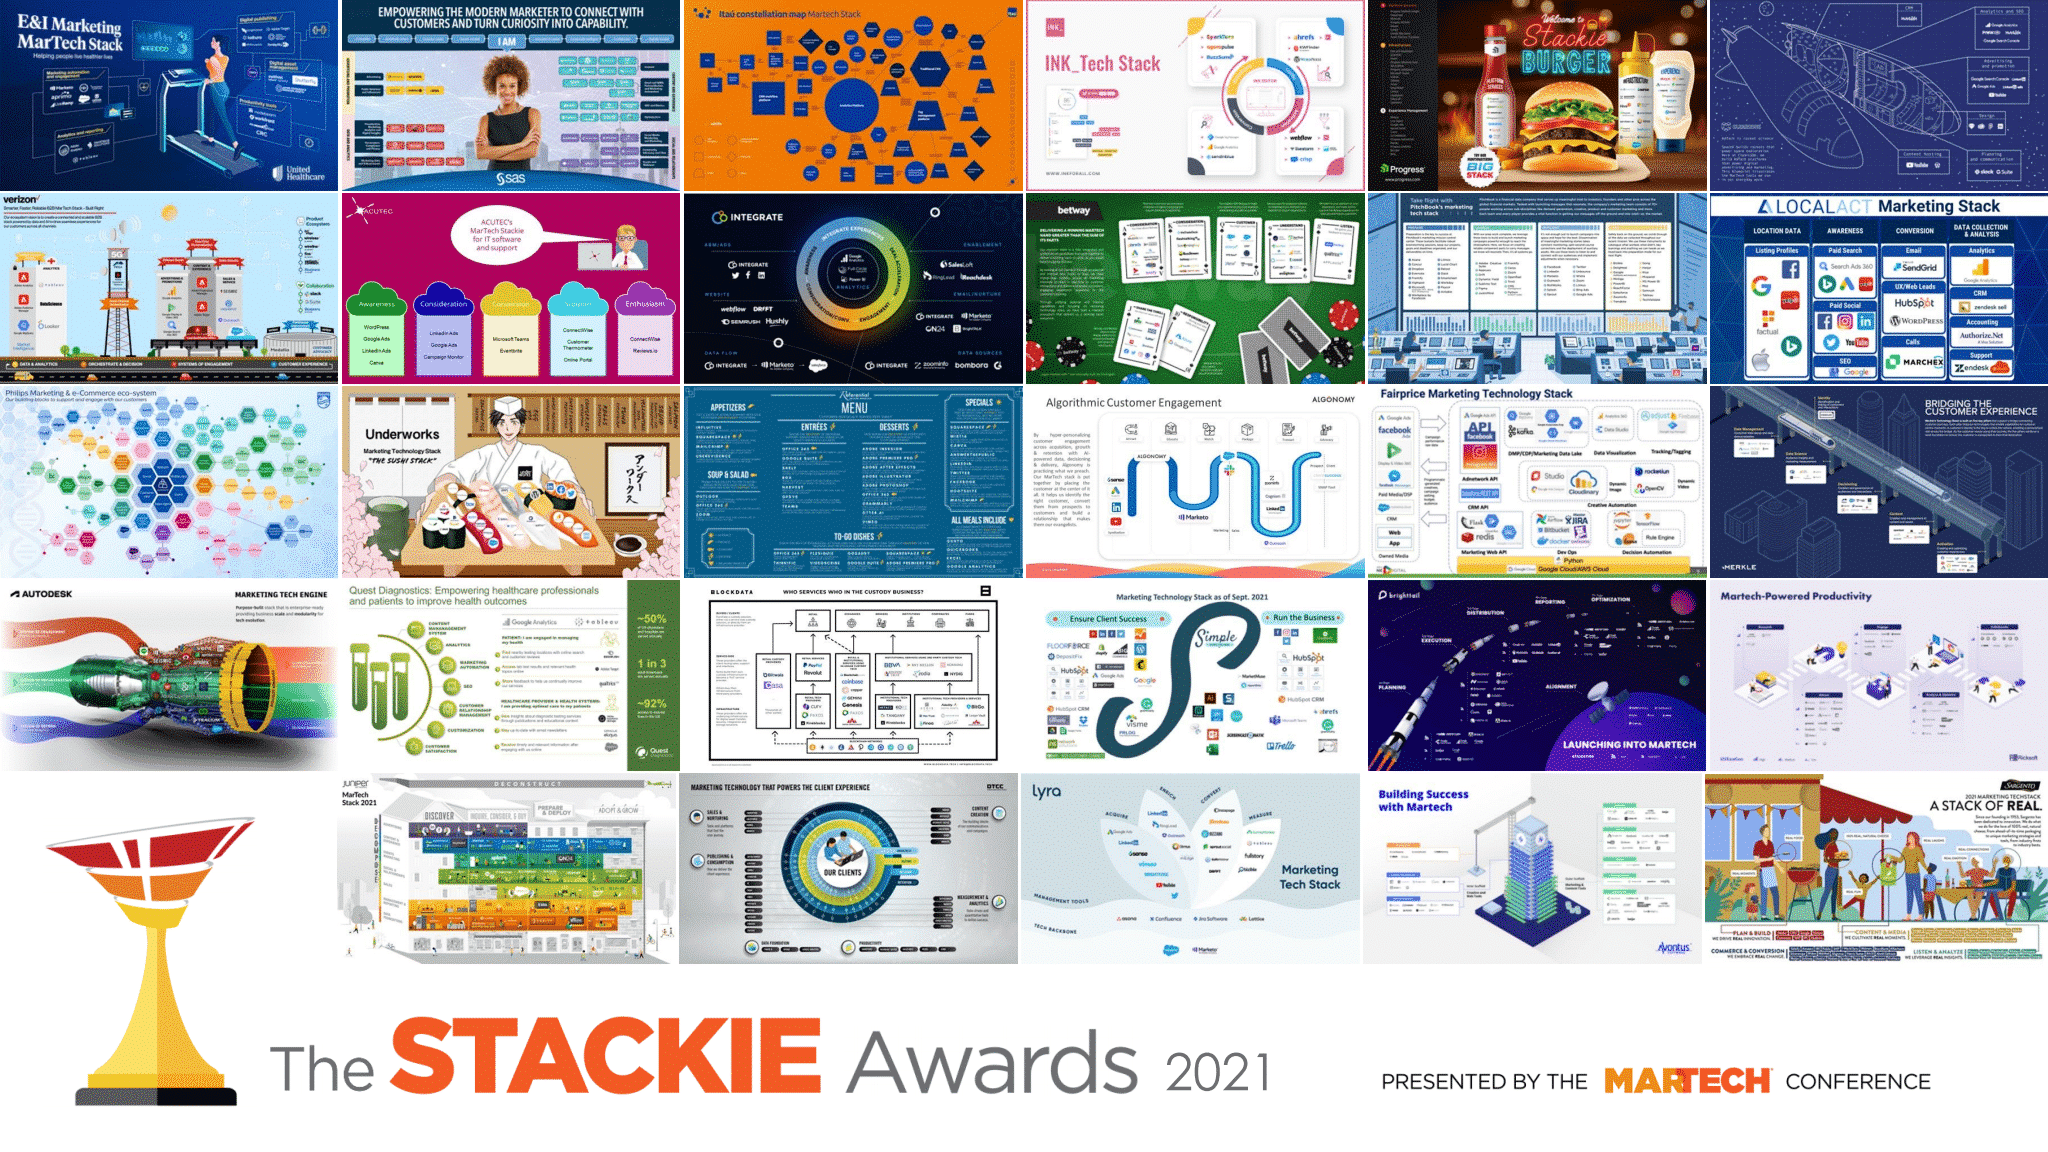 2021 Stackie Awards announced at MarTech: See the winners